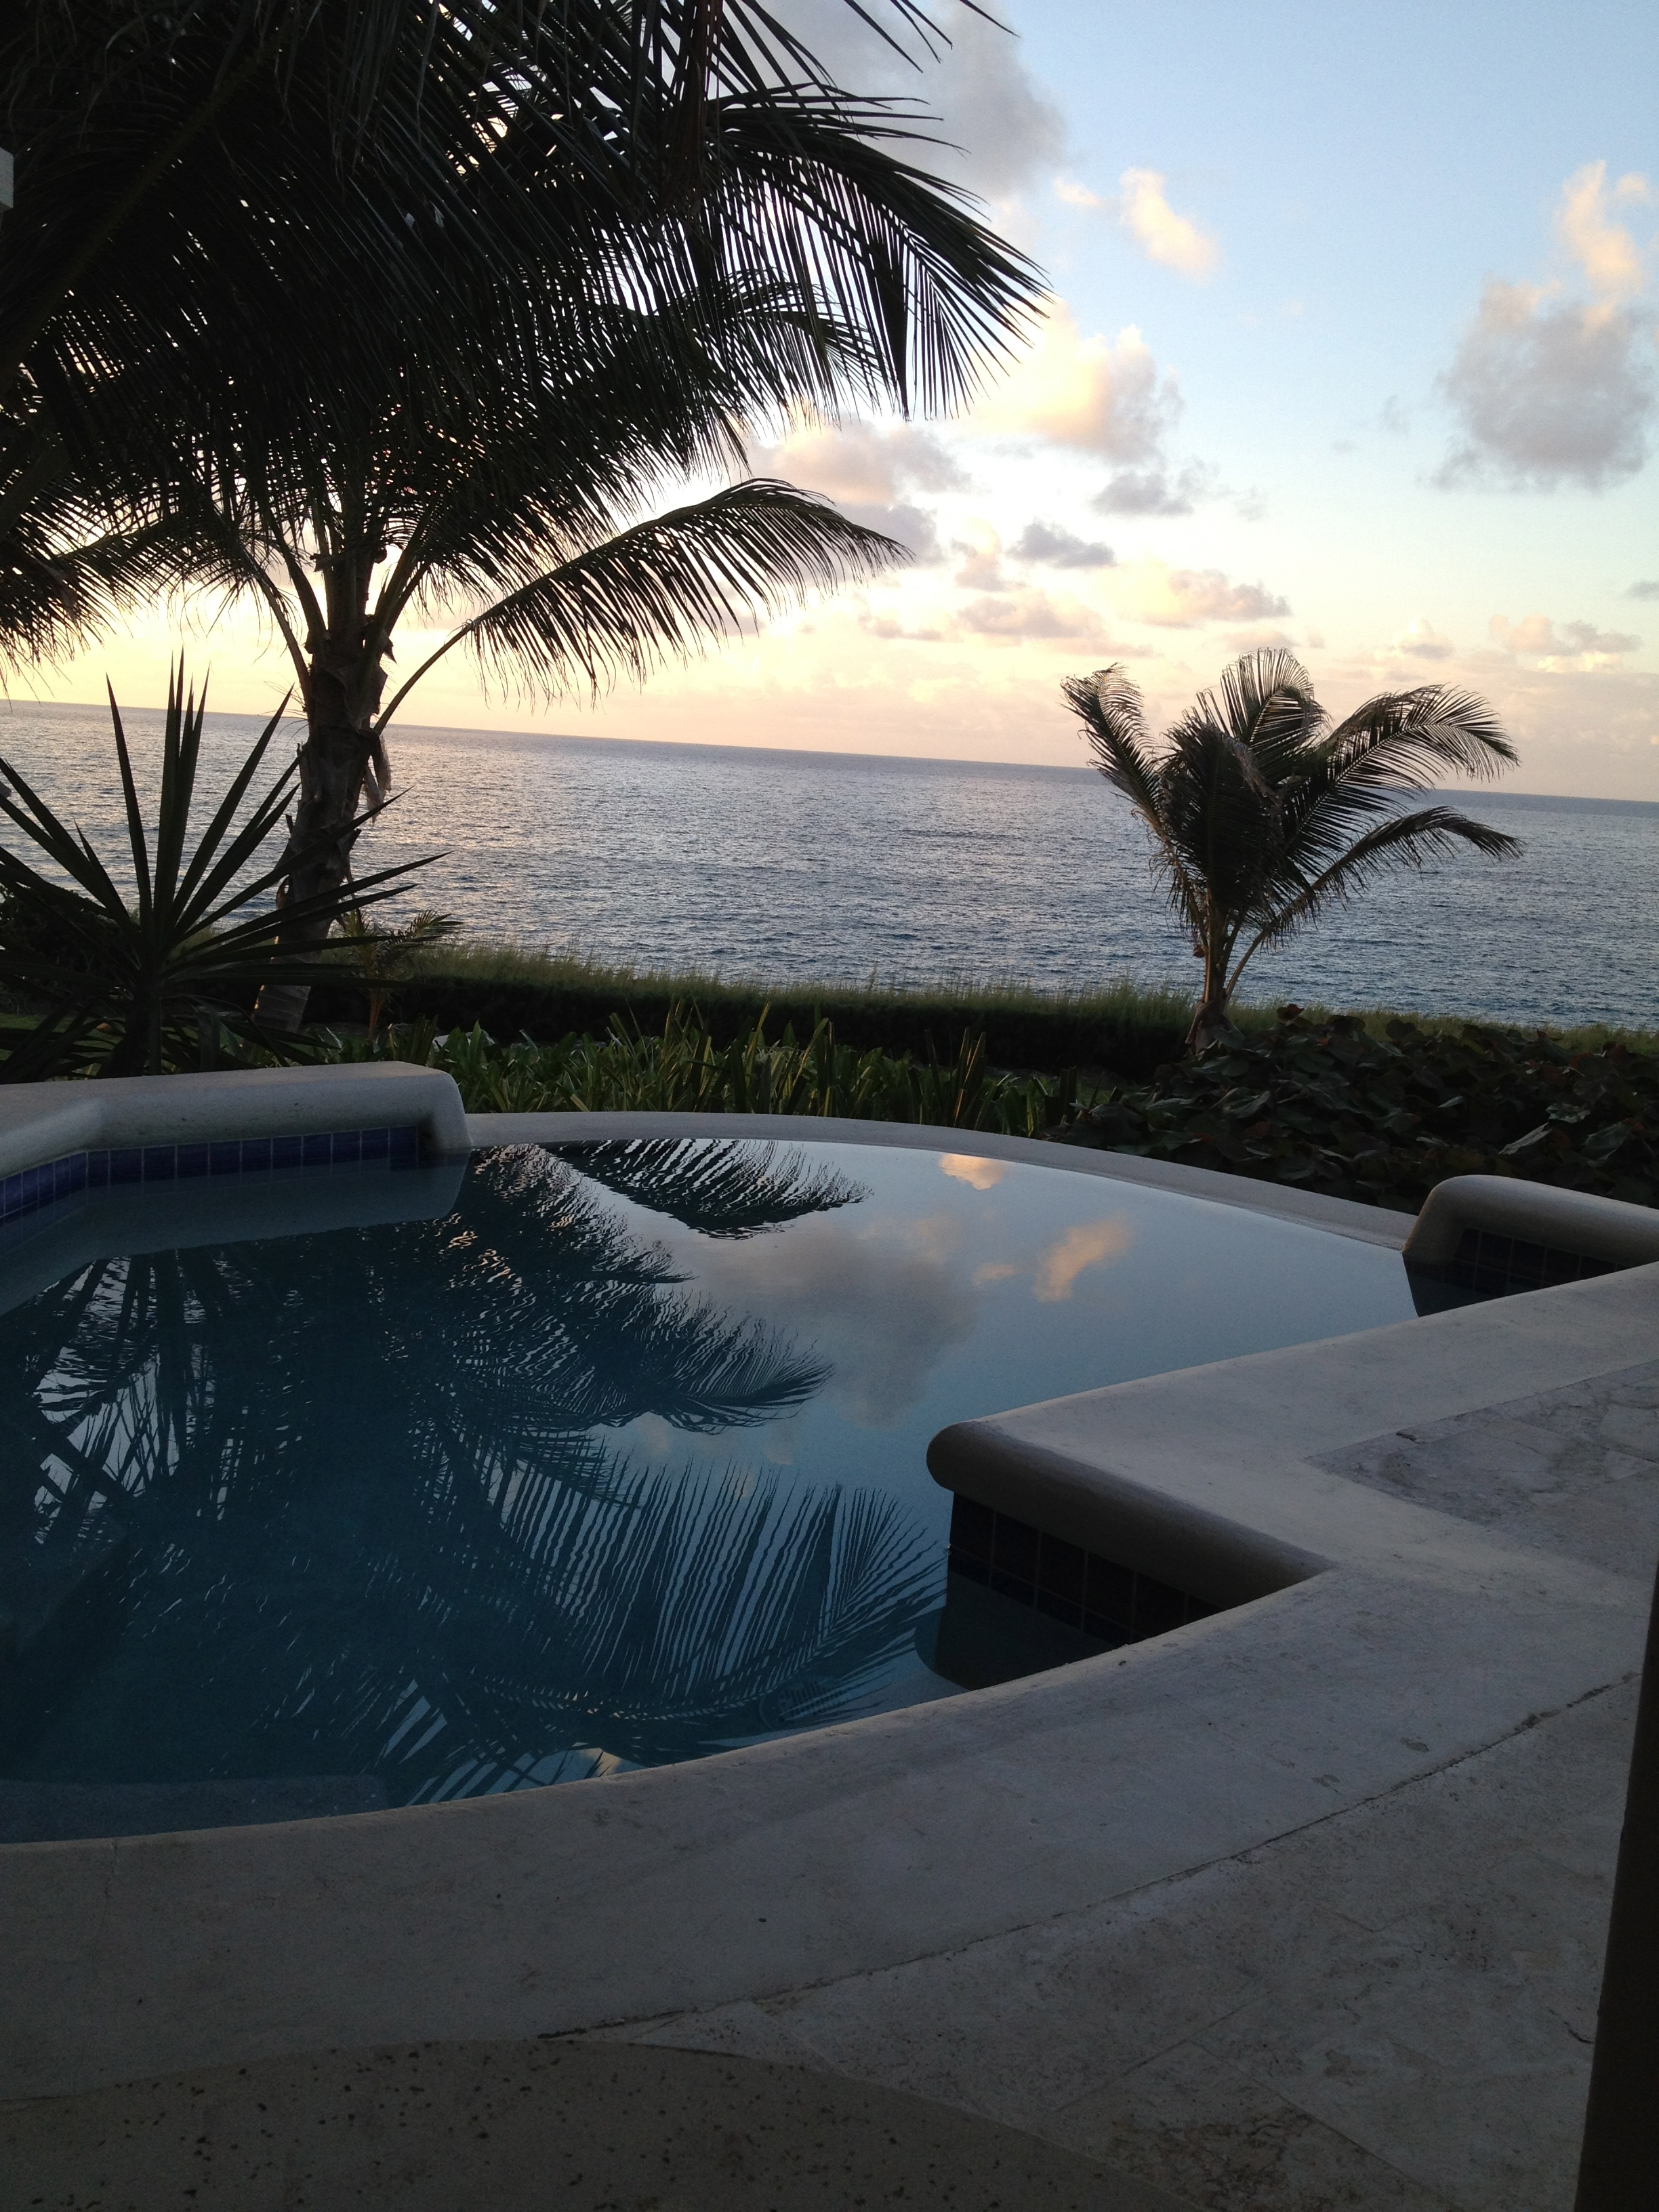 Sunrise at The Crane, Barbados